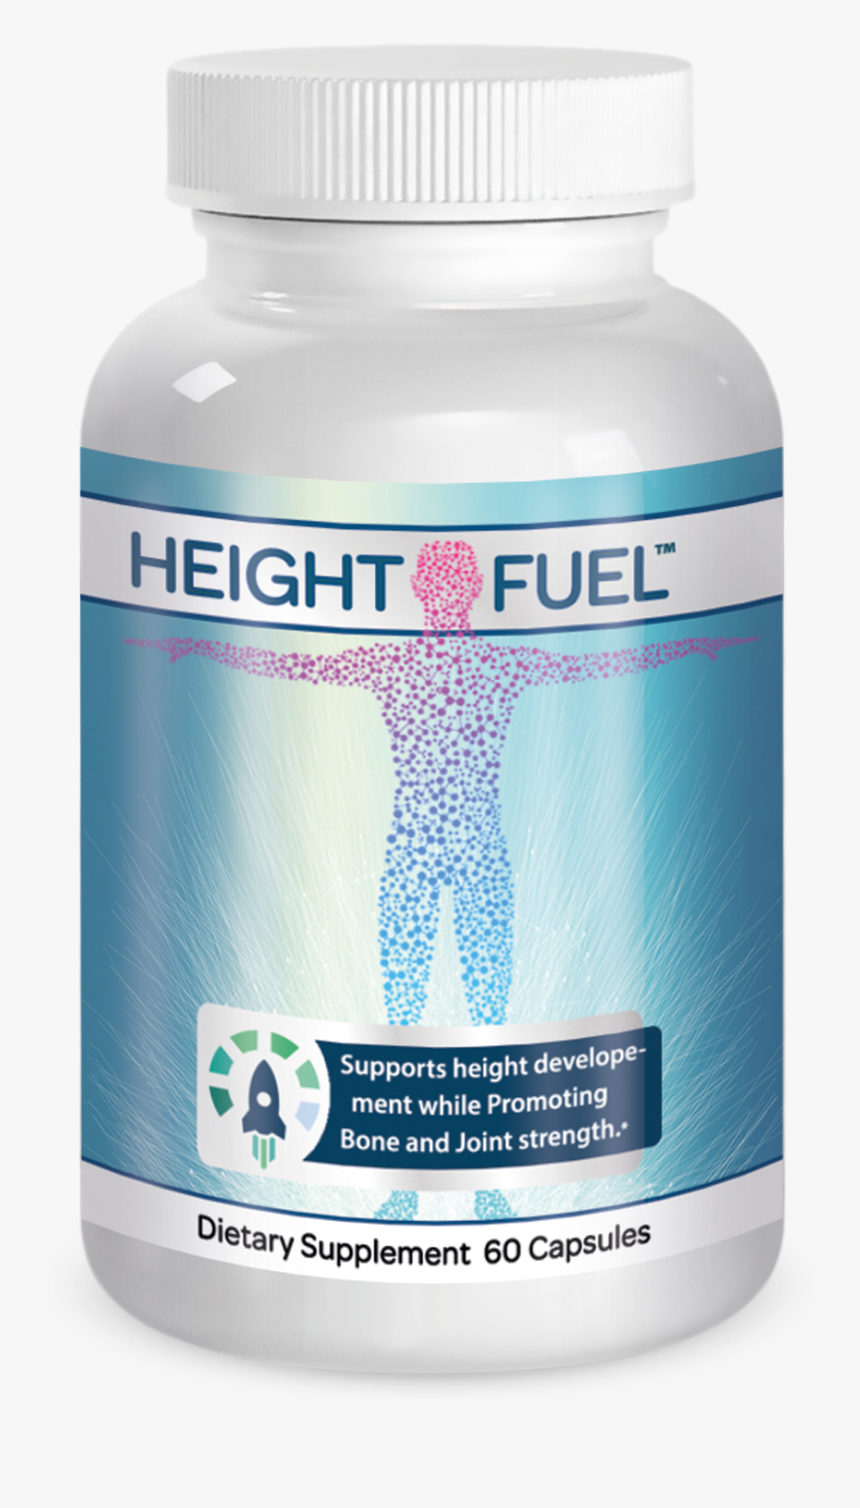 Height Enhancement Natural Bone &amp - Height Fuel, HD Png Download, Free Download